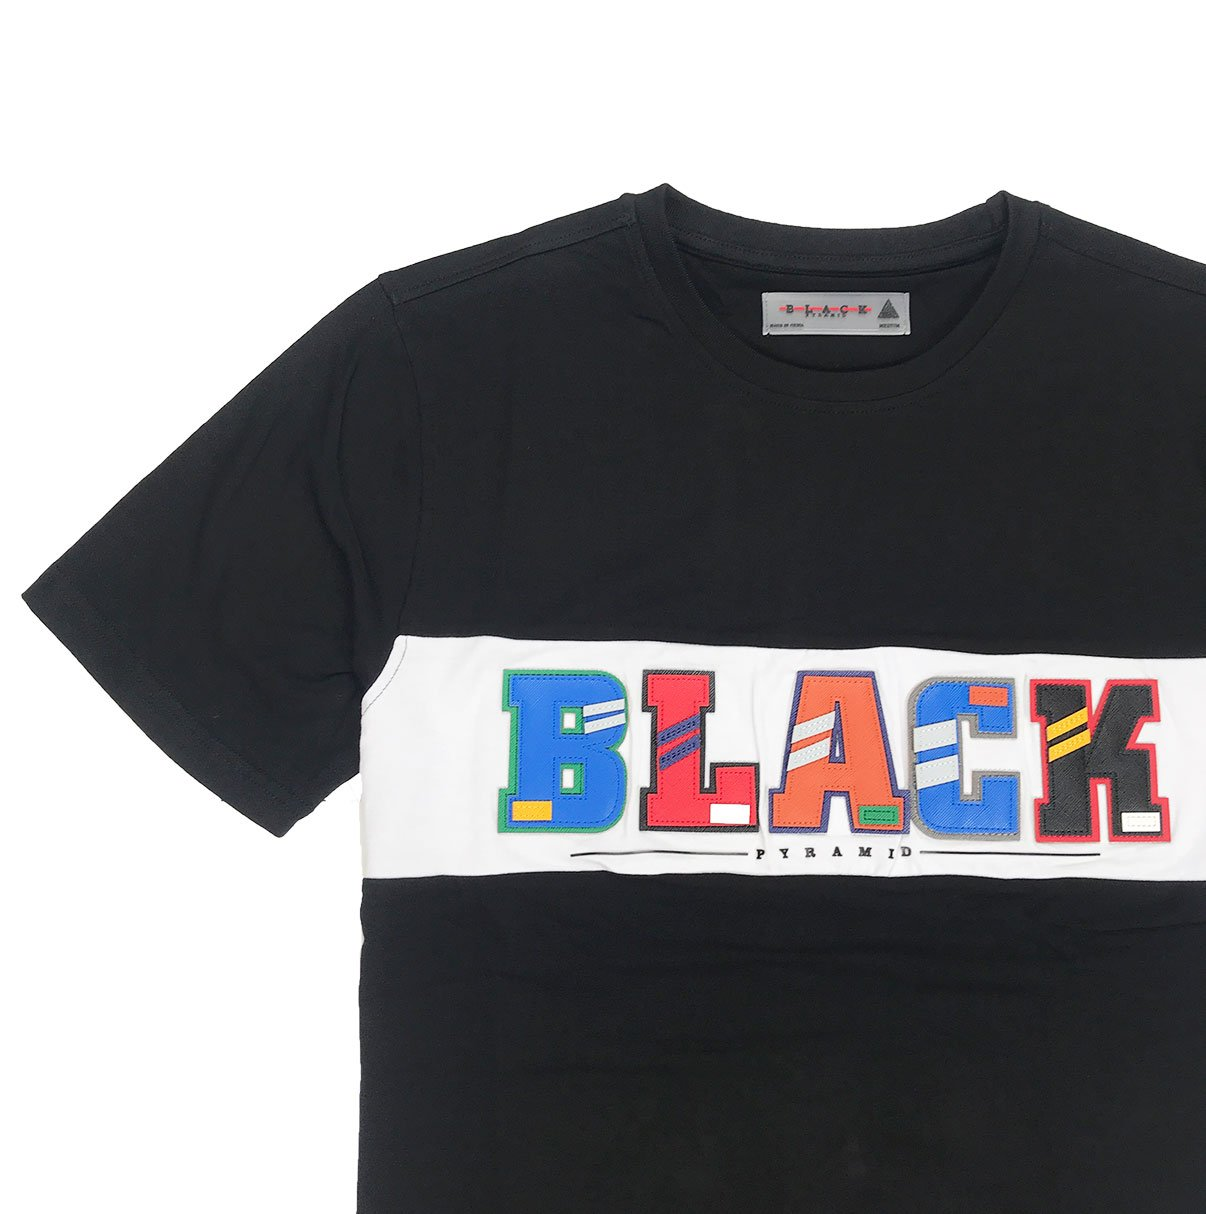 Black Pyramid Letters Shirt